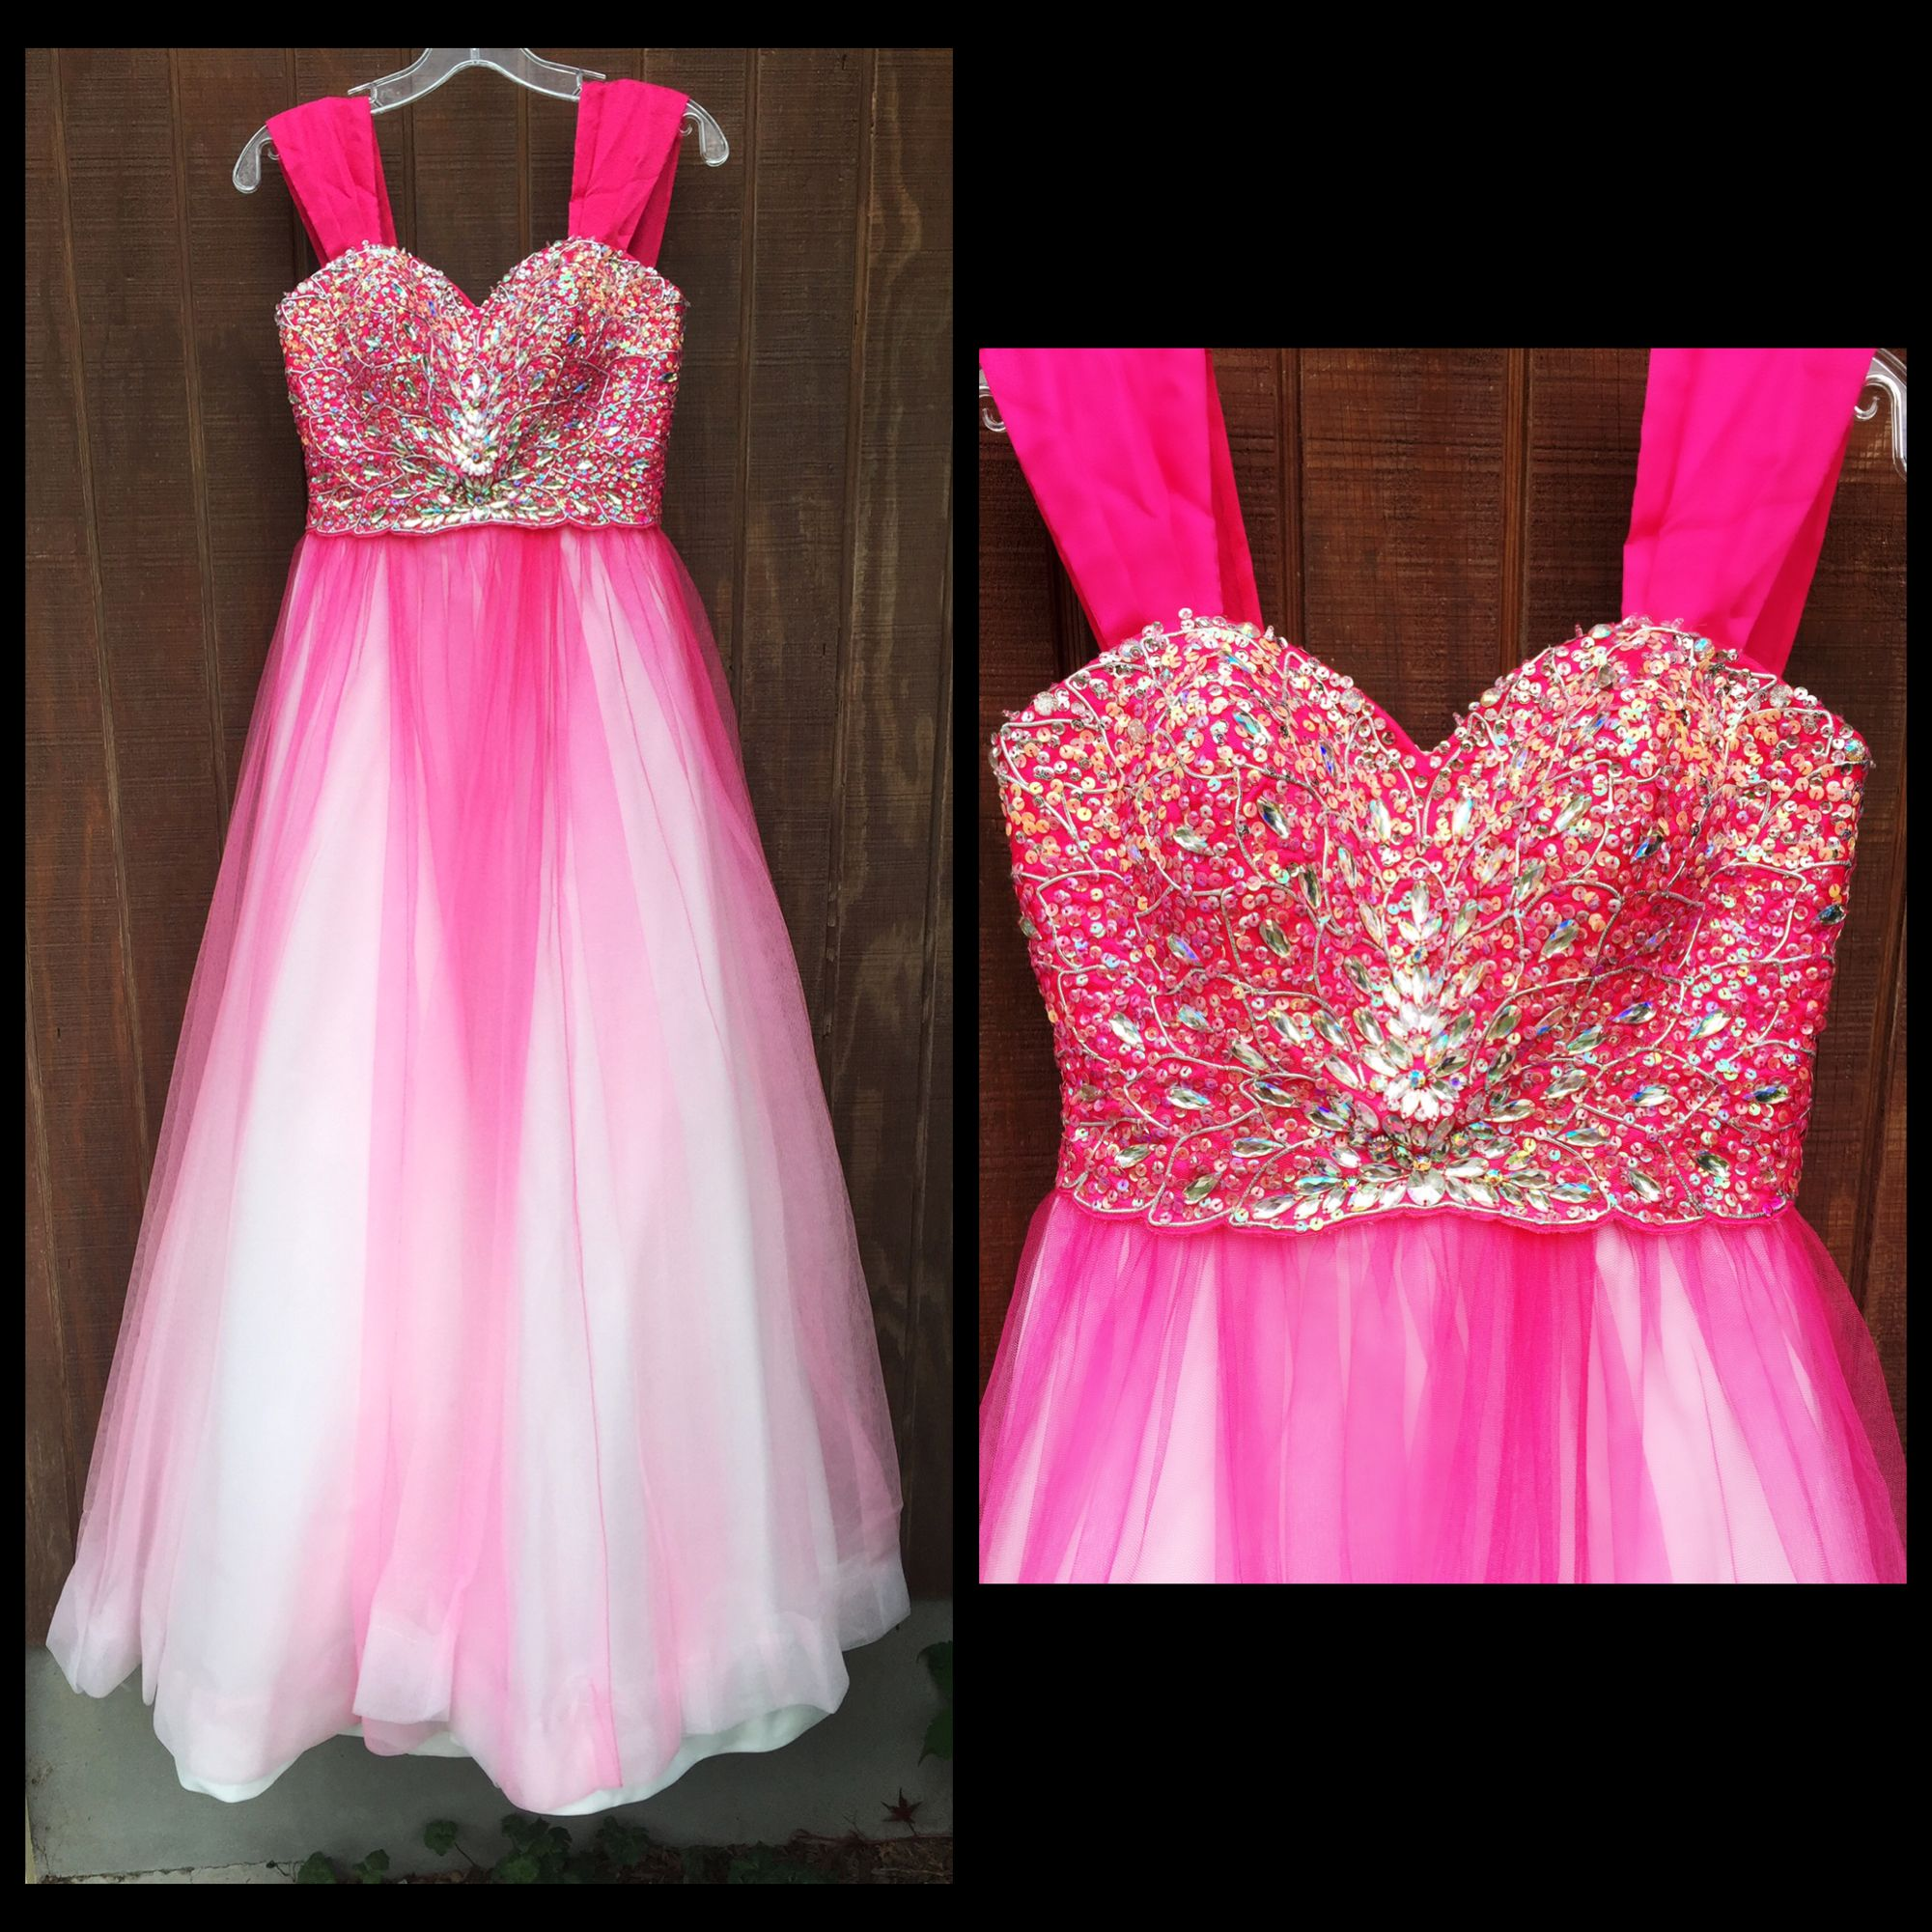 Available At Bling It On Dress Rentals In Riverton Utah